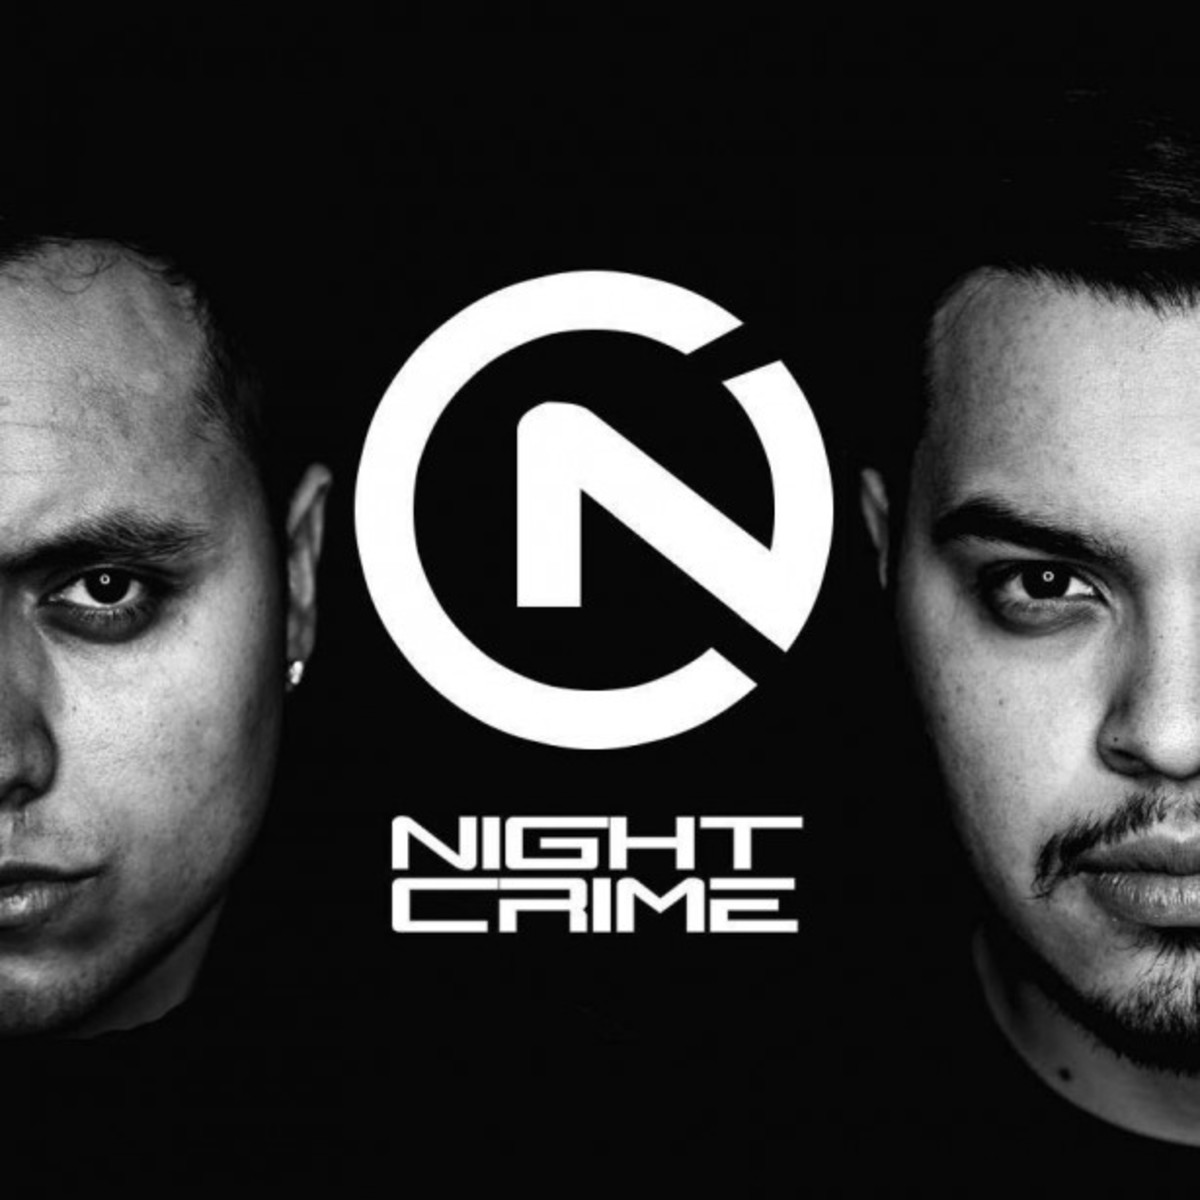 night crime